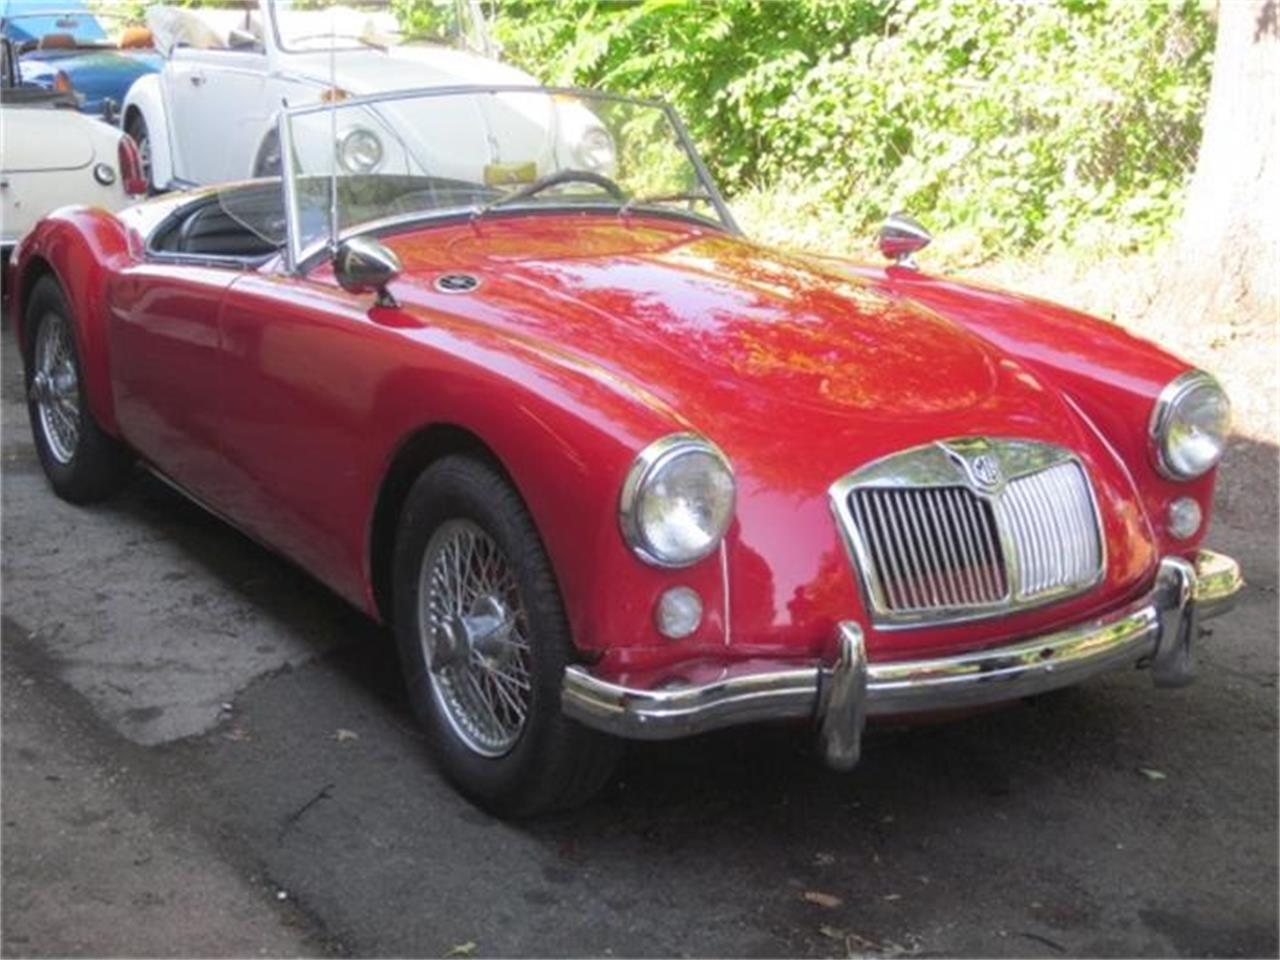 Large Picture of '59 MG MGA 1500 located in Connecticut - $24,000.00 - EYVI